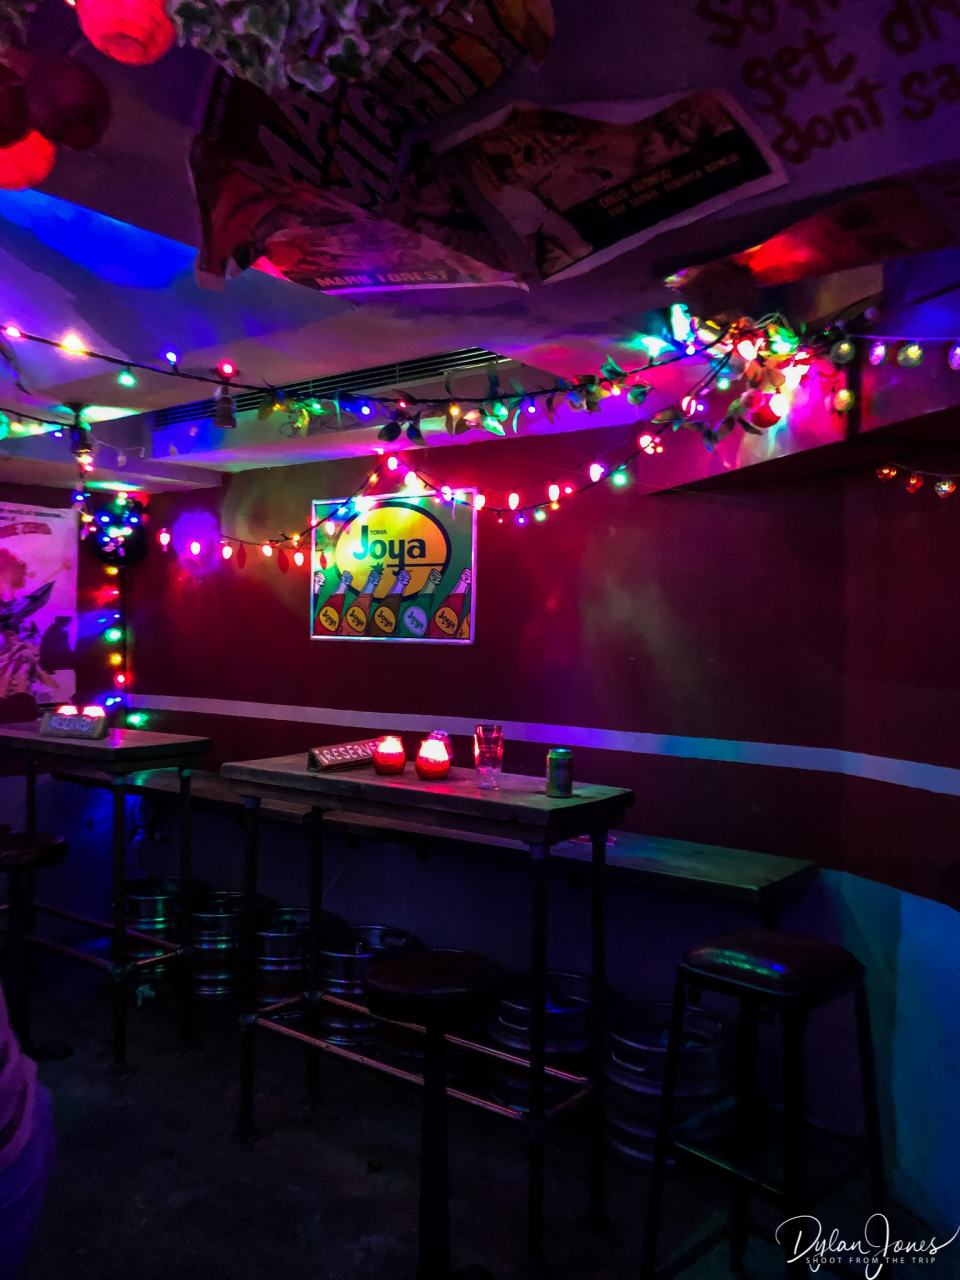 Call Me Mr. Lucky - a secret dive bar in the London Bridge area